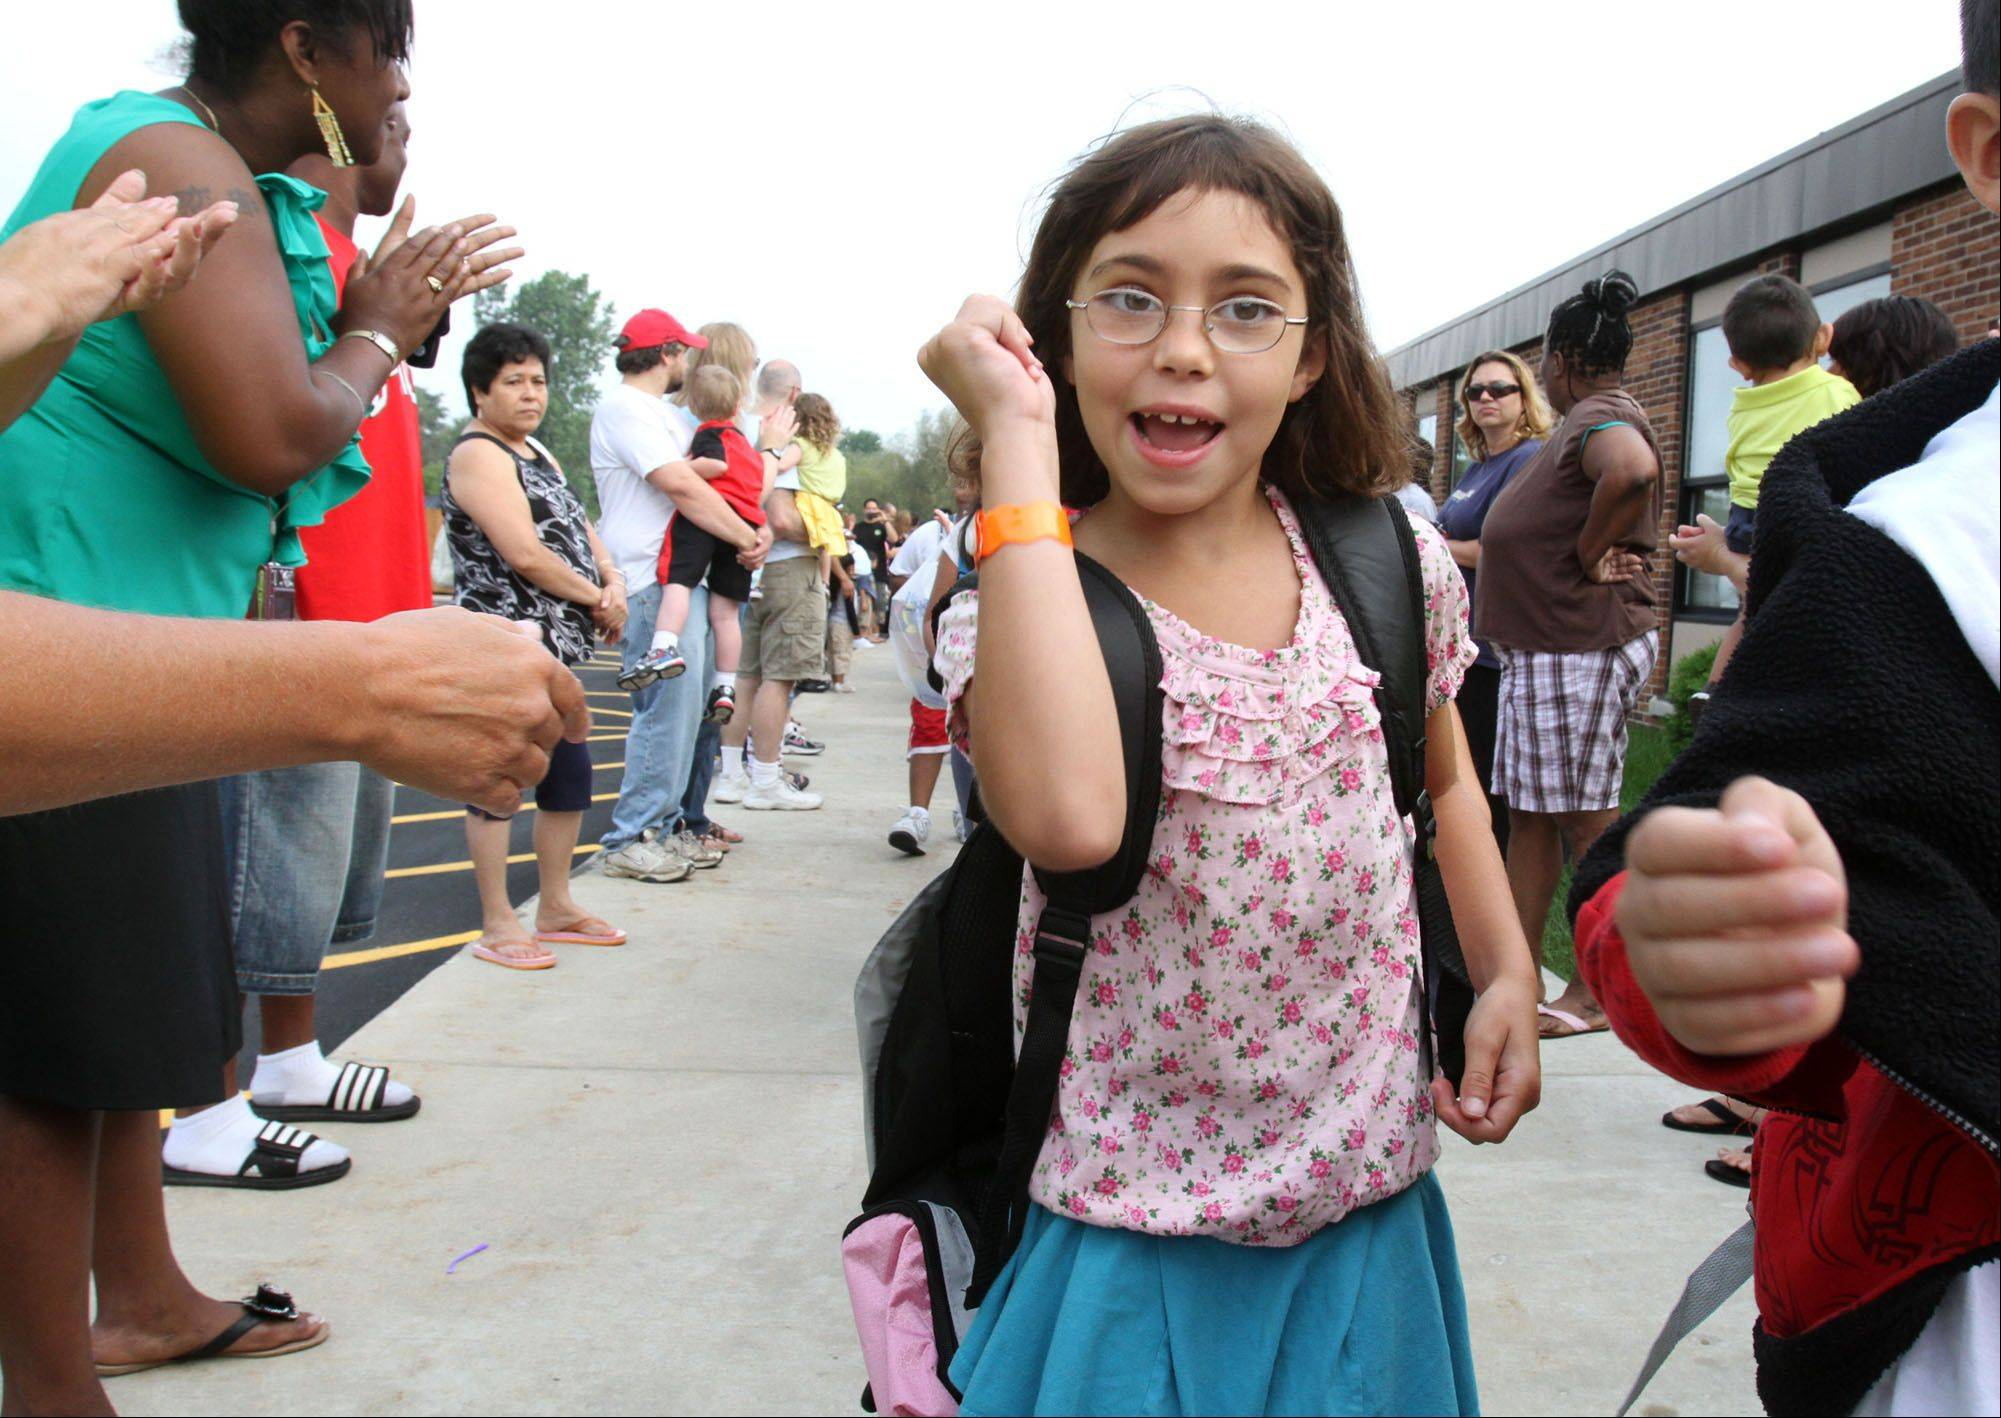 Third grader Arlene Benhart is happy to be returning to Anne Fox School as she walks through a Tunnel of Hope made up of staff, teachers, parents and community members lining the sidewalk outside the school's main entrance in Hanover Park on Wednesday, the first day of school in Schaumburg Township Elementary District 54.